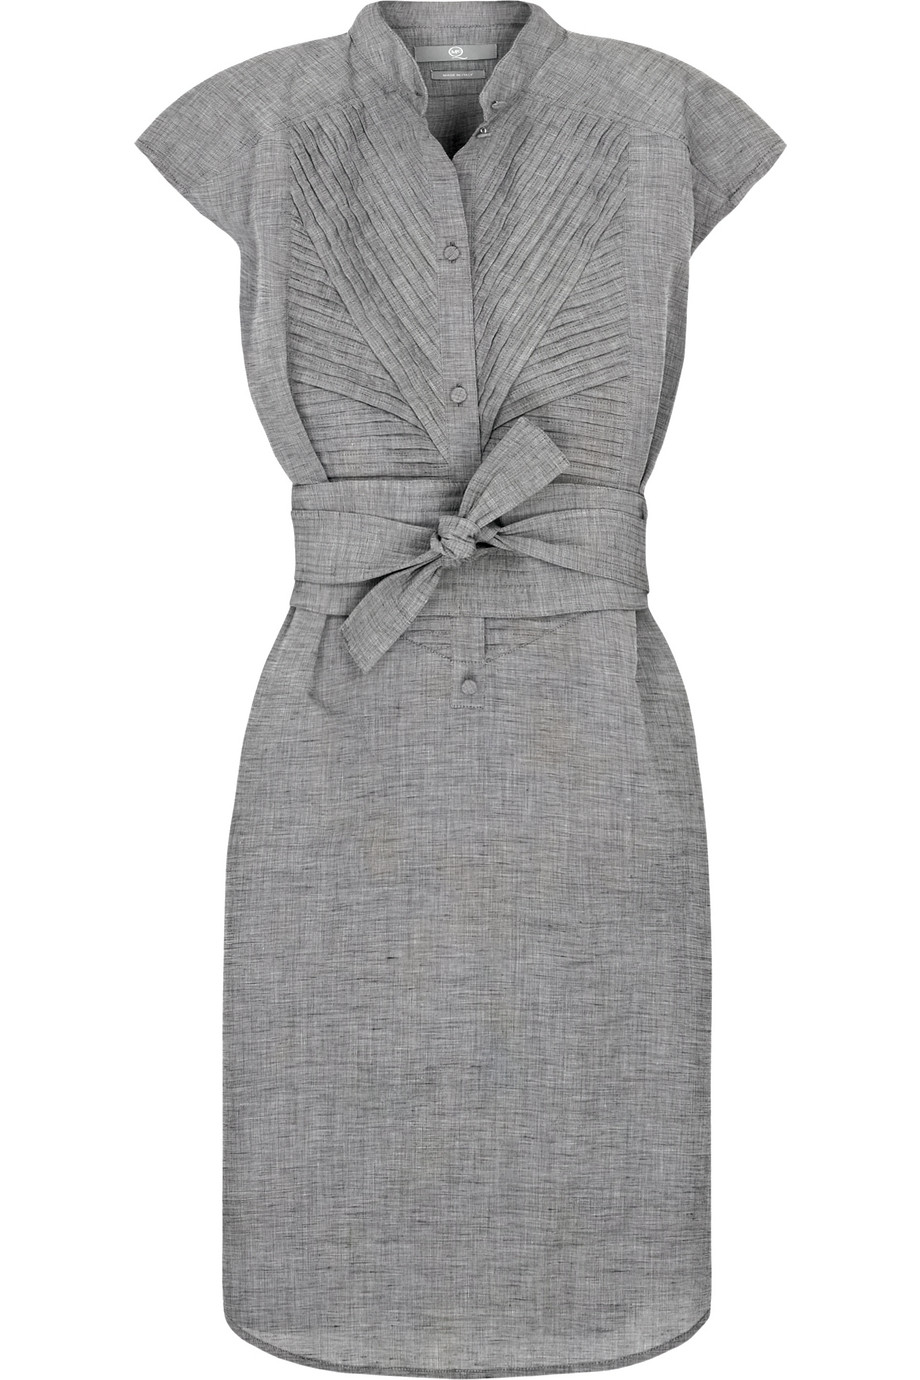 FASHION DESIGN: 2012 OFFICE STYLE DRESS